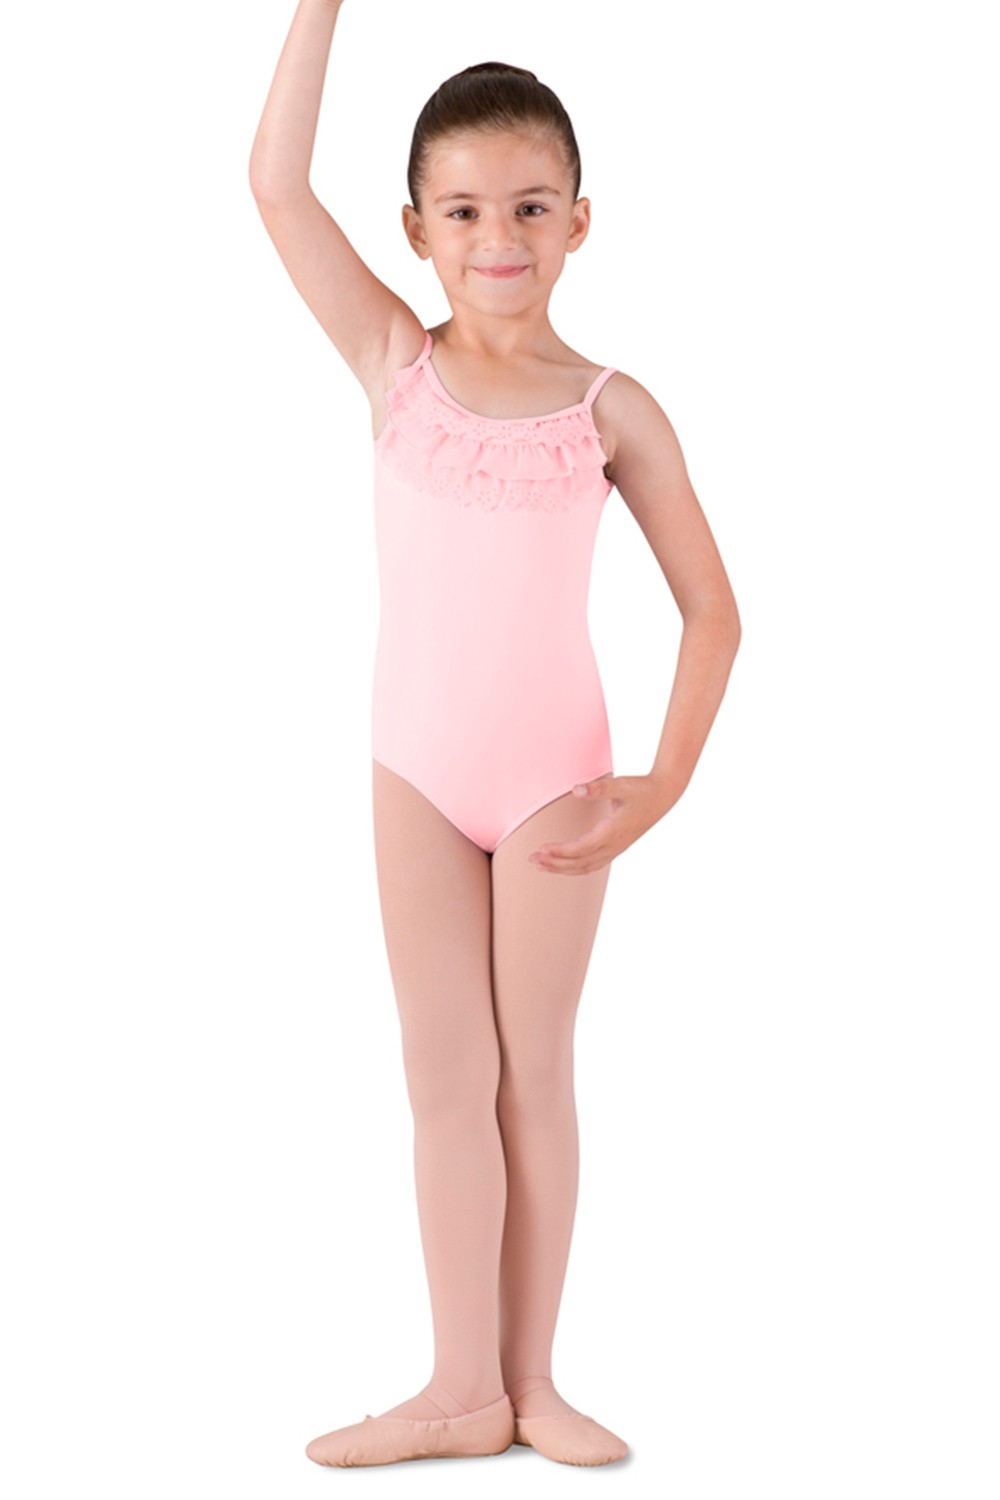 Childrens Dancewear from leading discount dancewear store, Planet Dance. The collection includes girls leotards, dance tights, jazz dance wear and regulation RAD / .